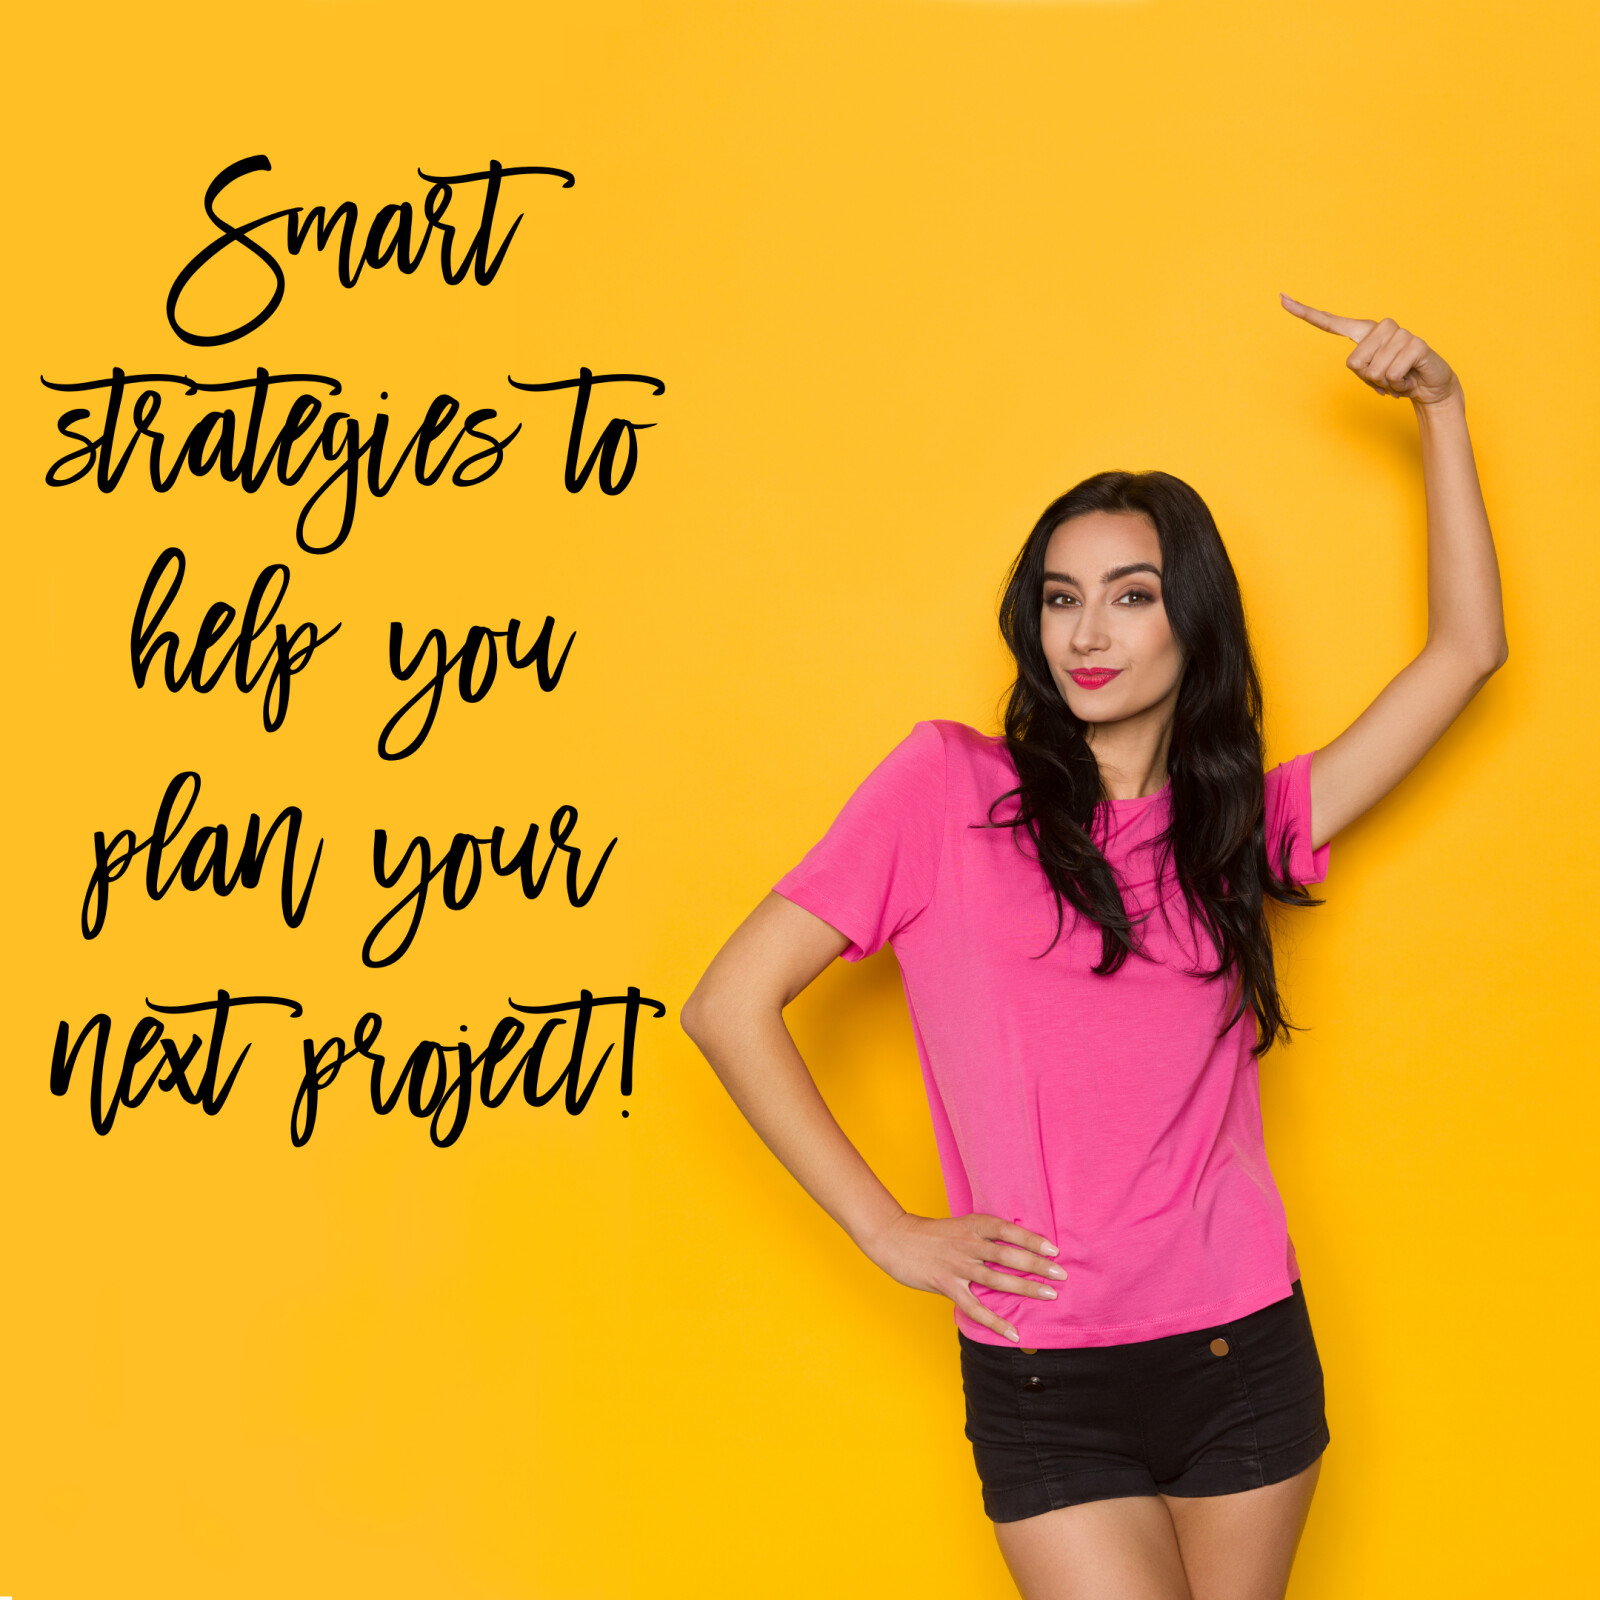 Smart strategies to help you plan your next project